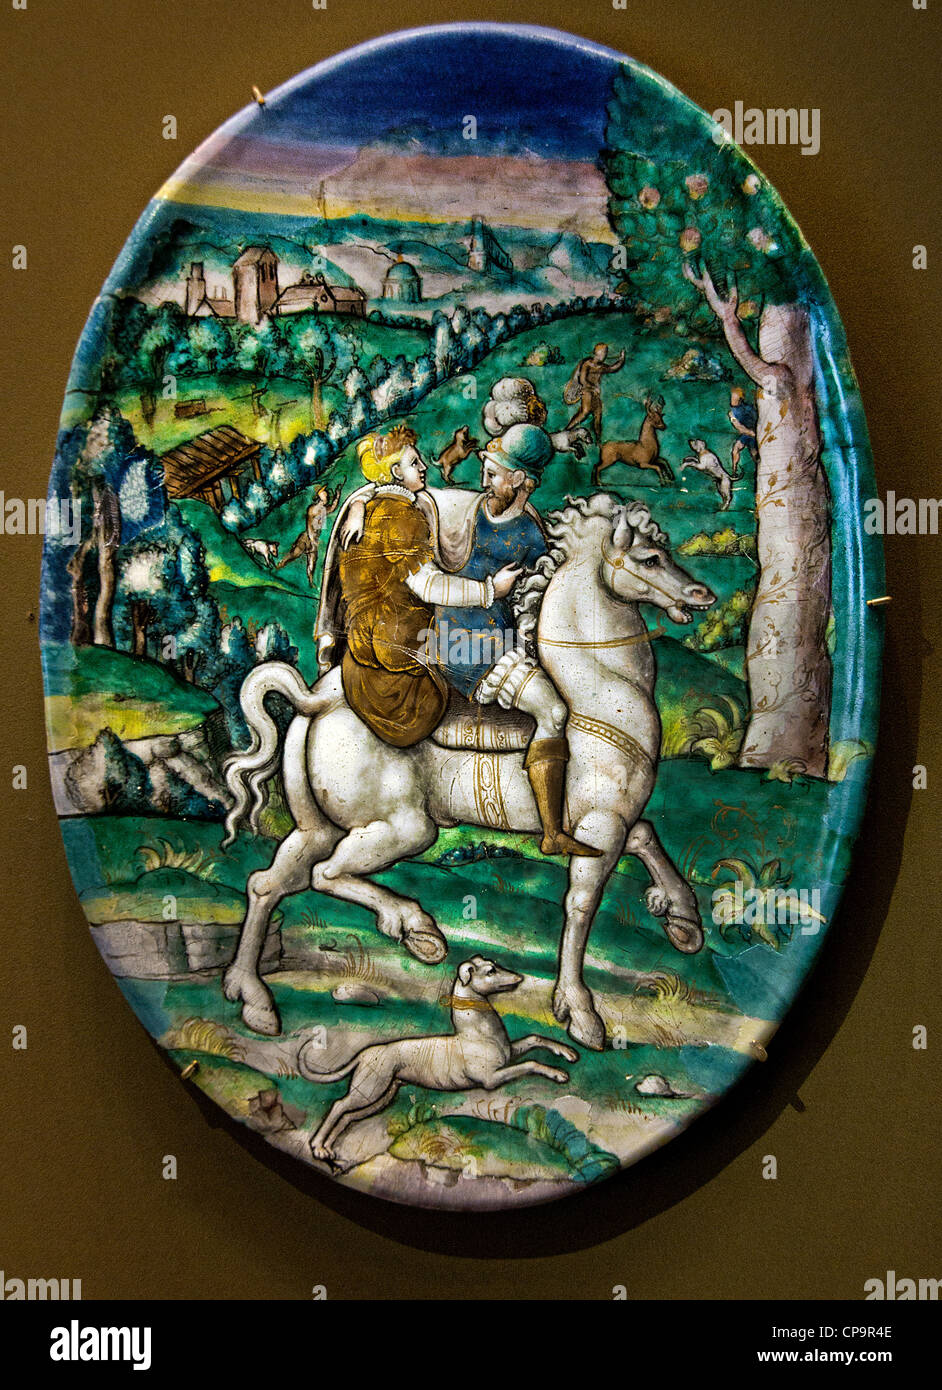 plate May or Spring Limoges Painted enamel on copper Leonard Limousin  Limosin 1505 - 1577 France - Stock Image